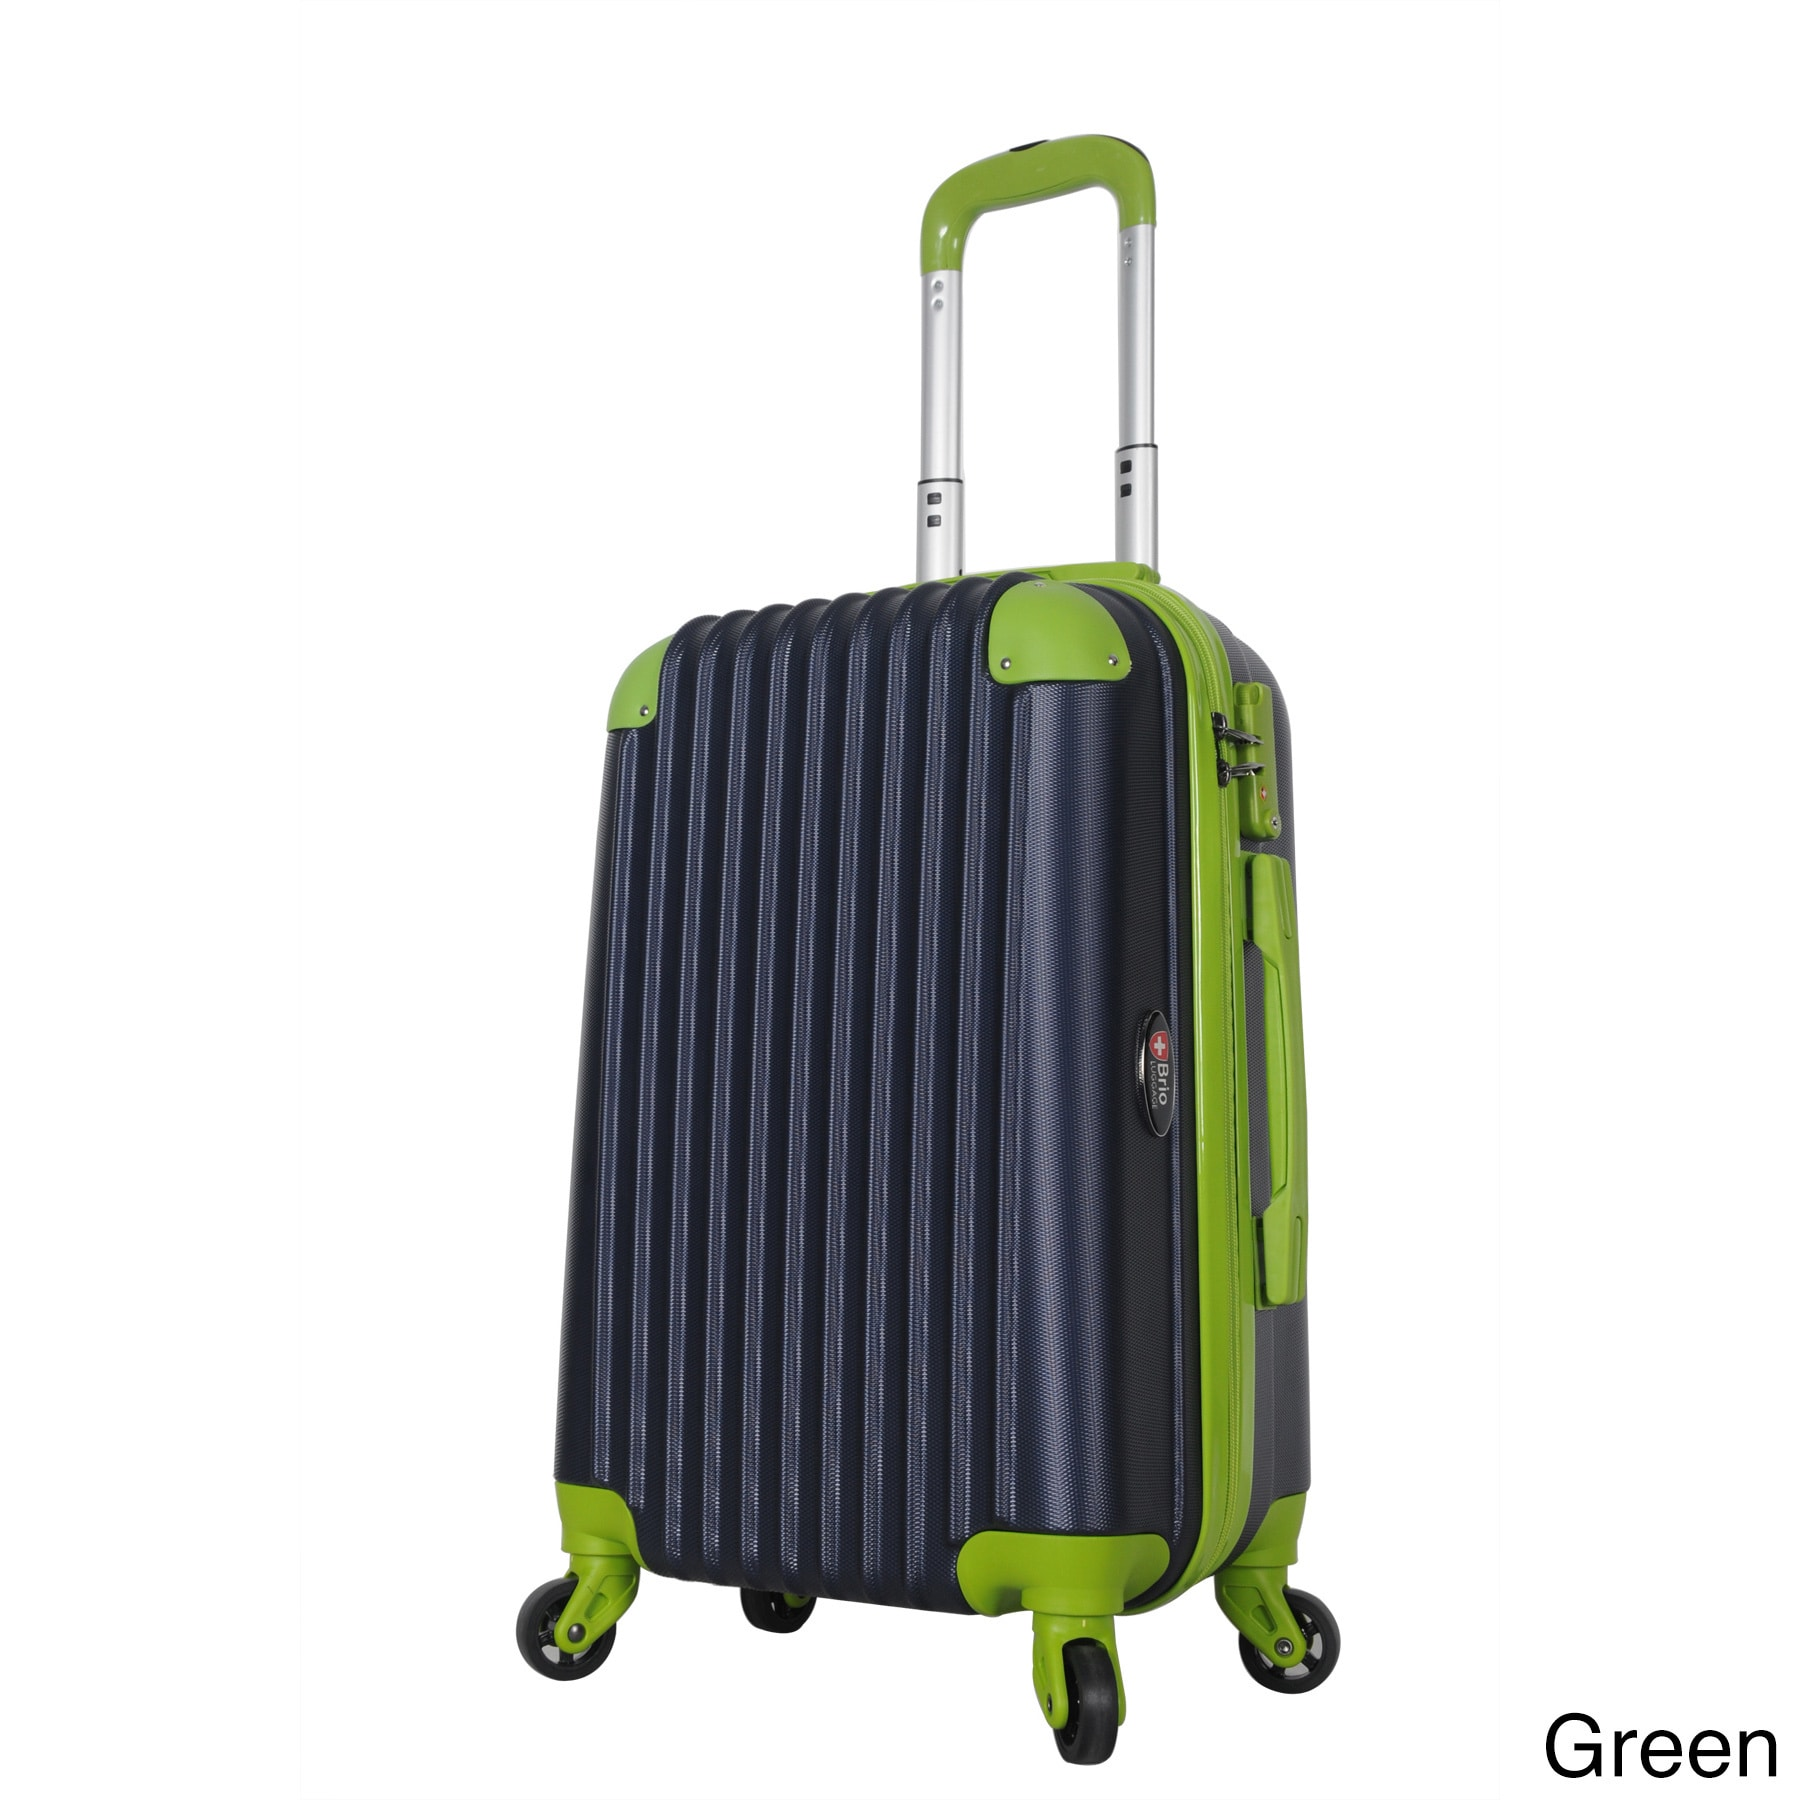 Brio Luggage 22-inch Hardside Carry On Suitcase with Spinner ...